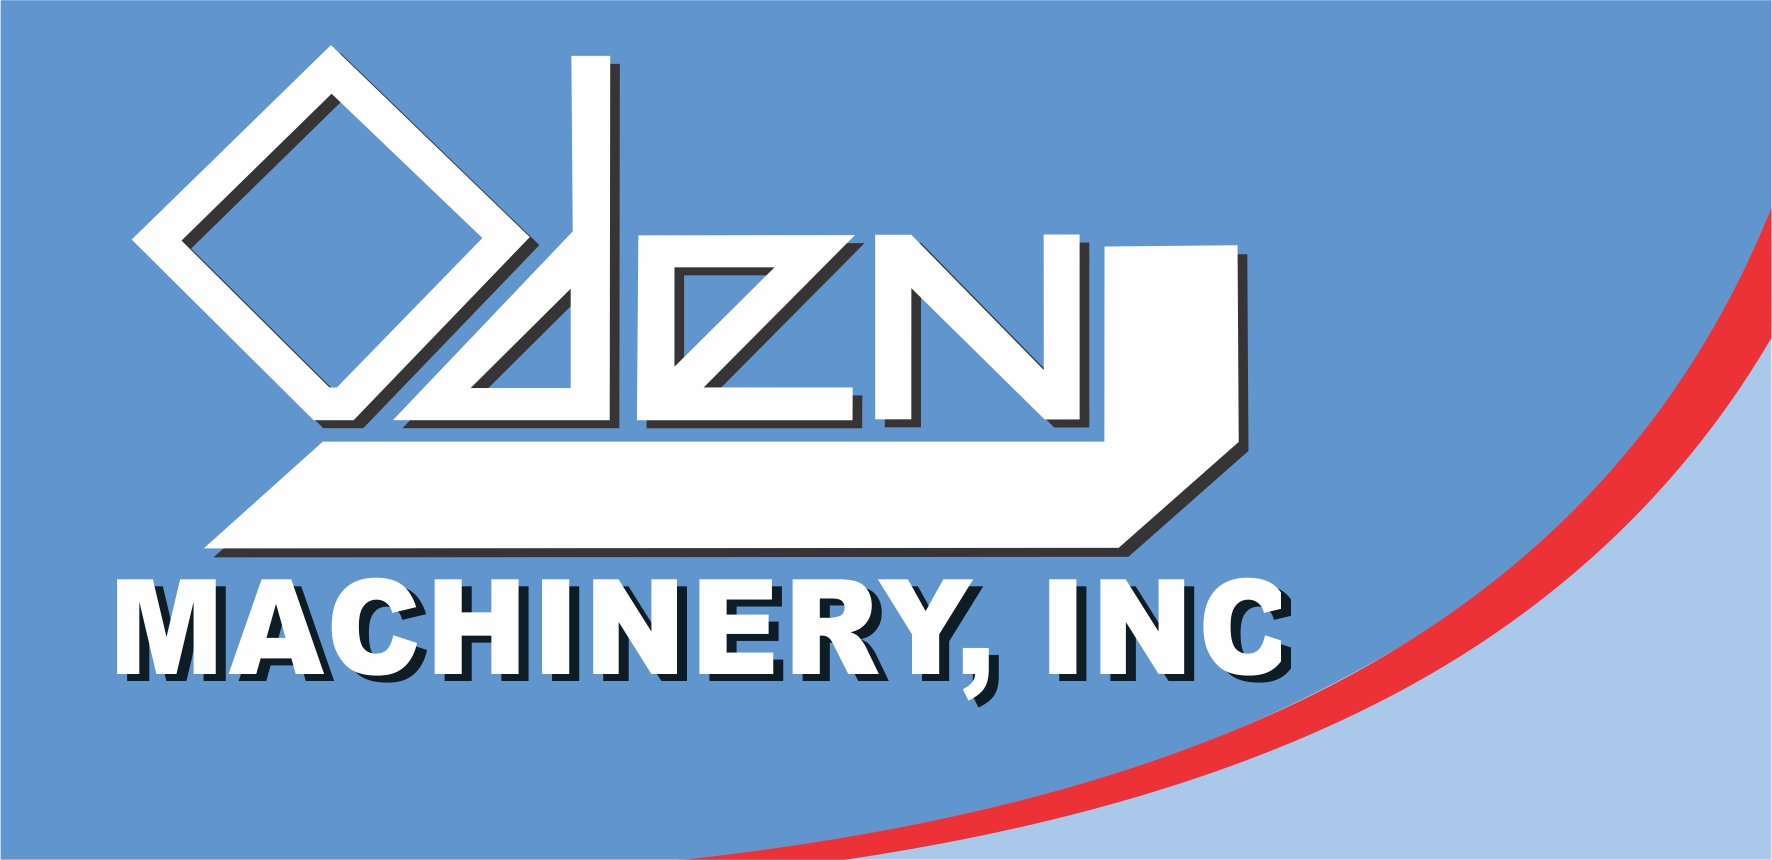 logo-oden-machinery-feb-2020-.jpg